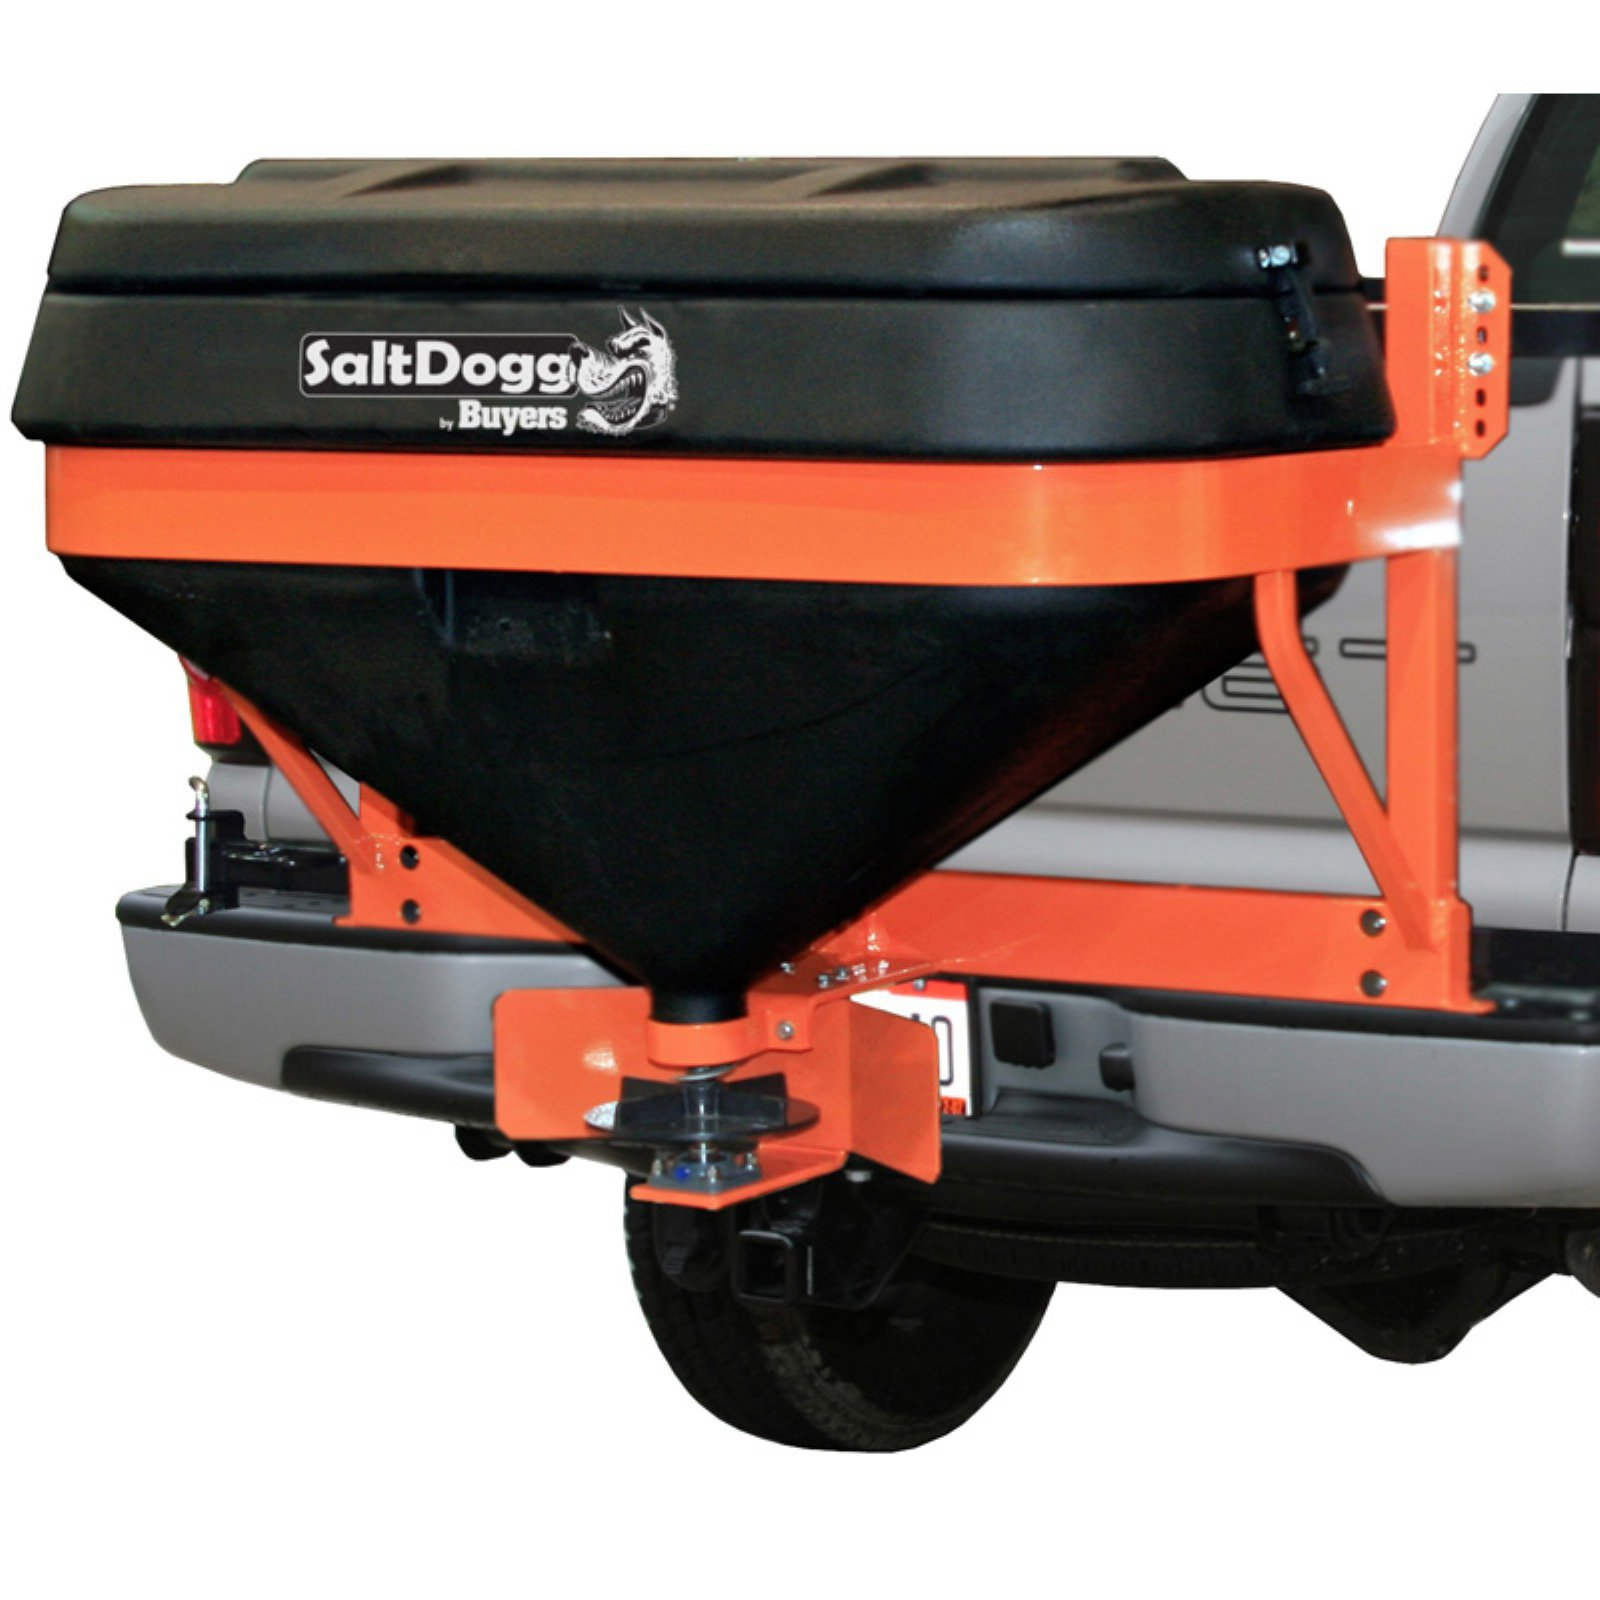 SaltDogg TGS05B Tailgate Hitch Salt Spreader by SALTDOGG